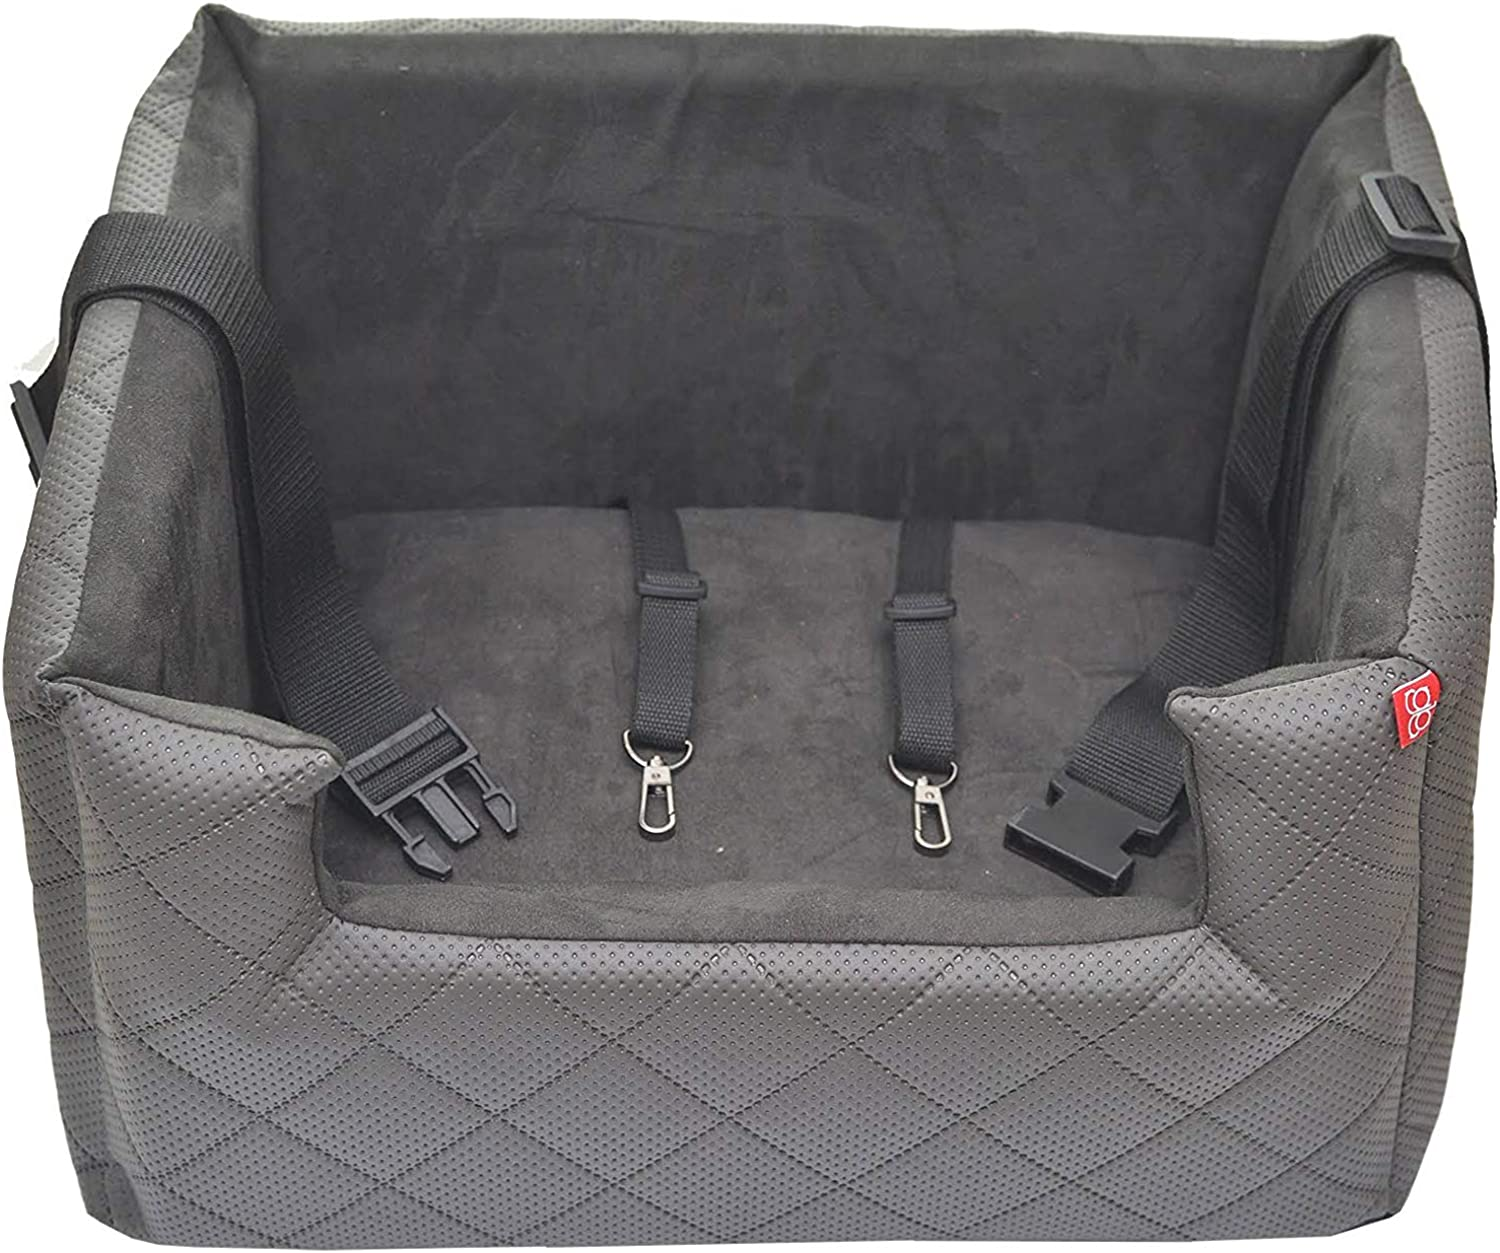 Amibelle Comfort Dog Seat LUX M Grey L 47 x W 40 x H 25 cm Car Seat Rear Seat Front Seat Luxury for Dogs Without Chemistry